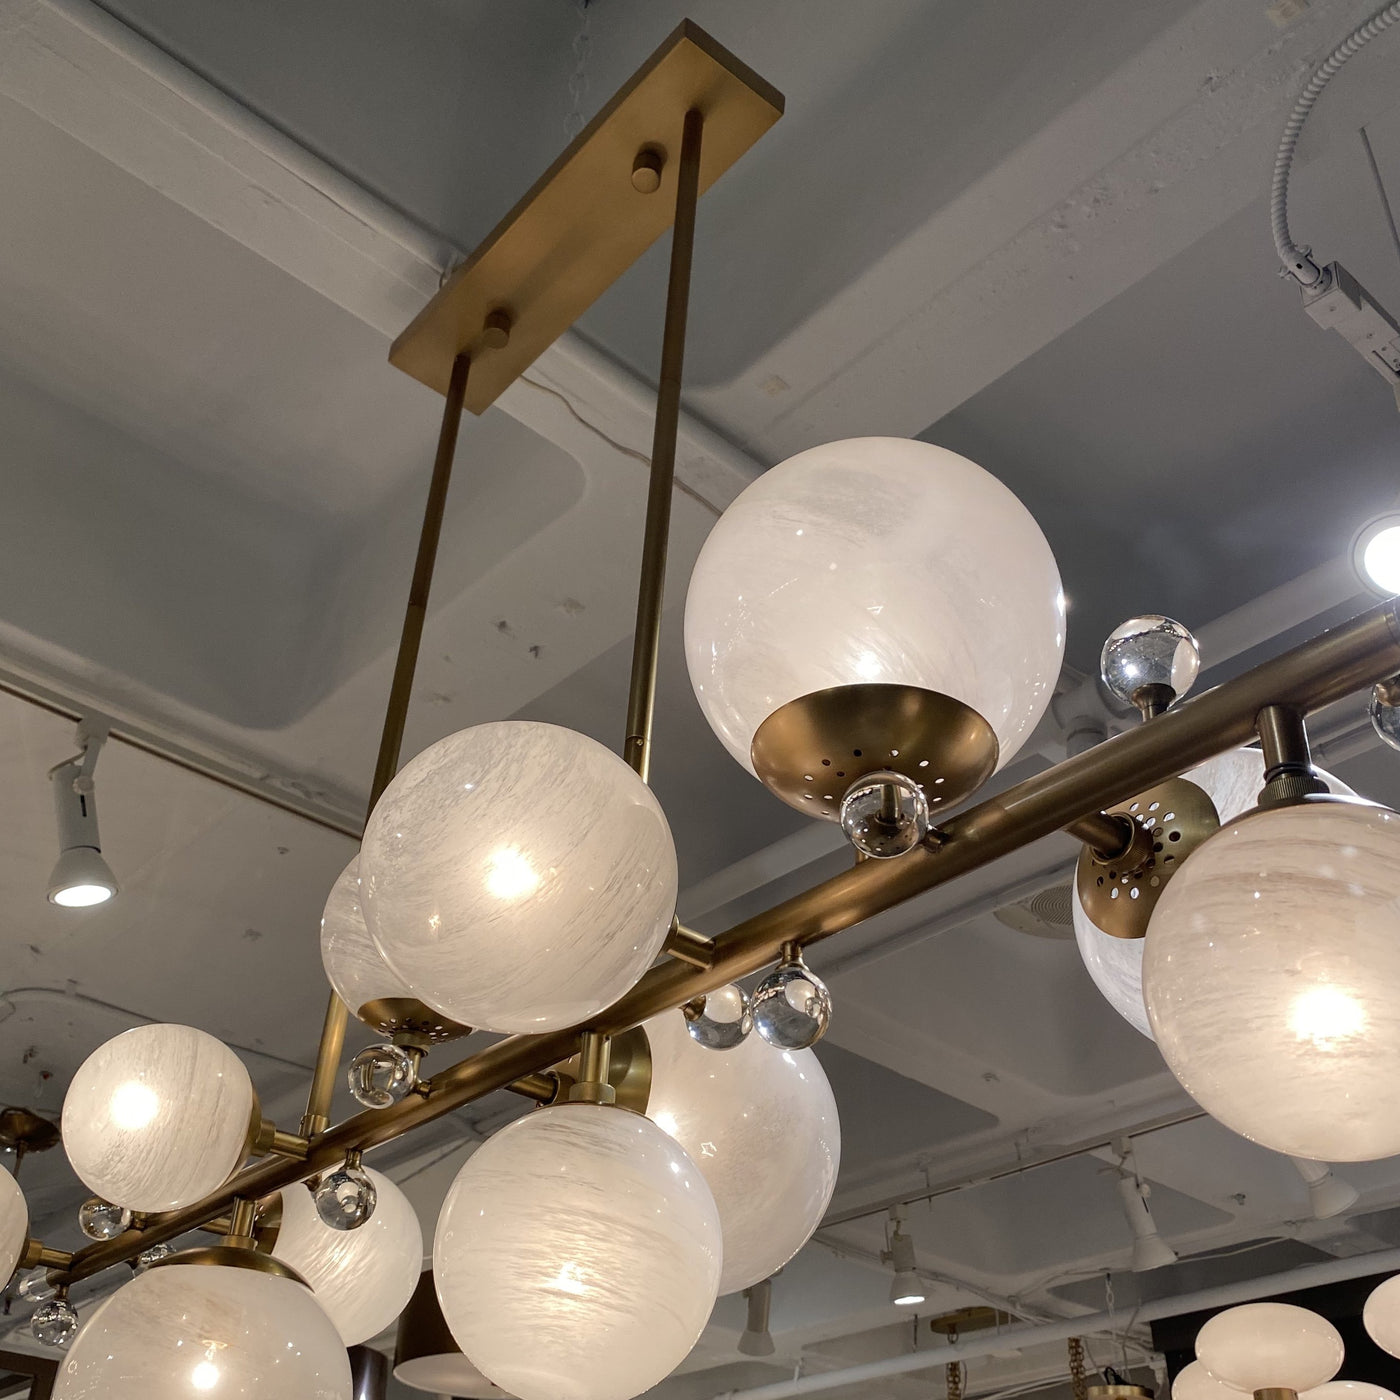 arteriors troon chandelier close up bulb